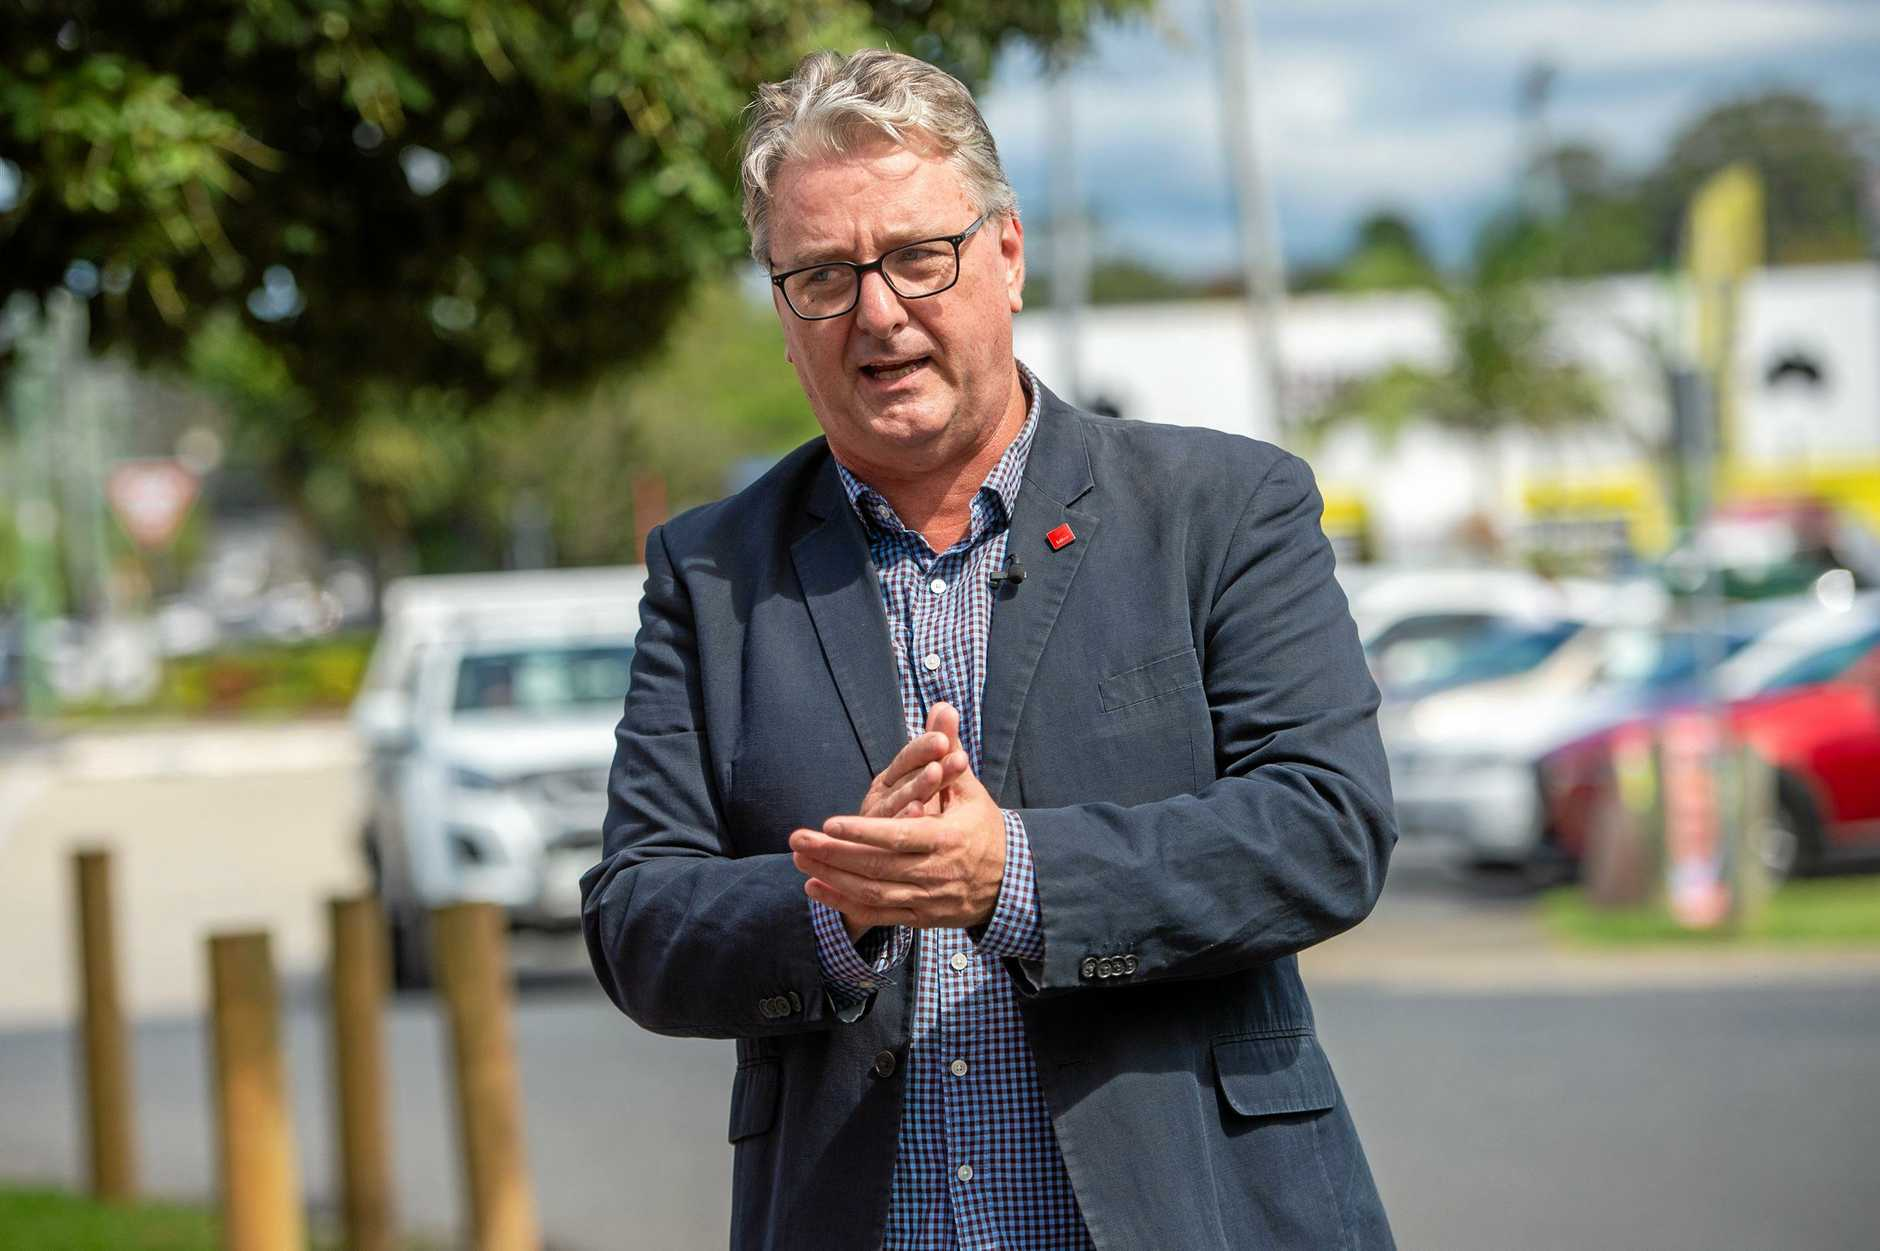 Australian Labor Party candidate for Cowper Andrew Woodward.